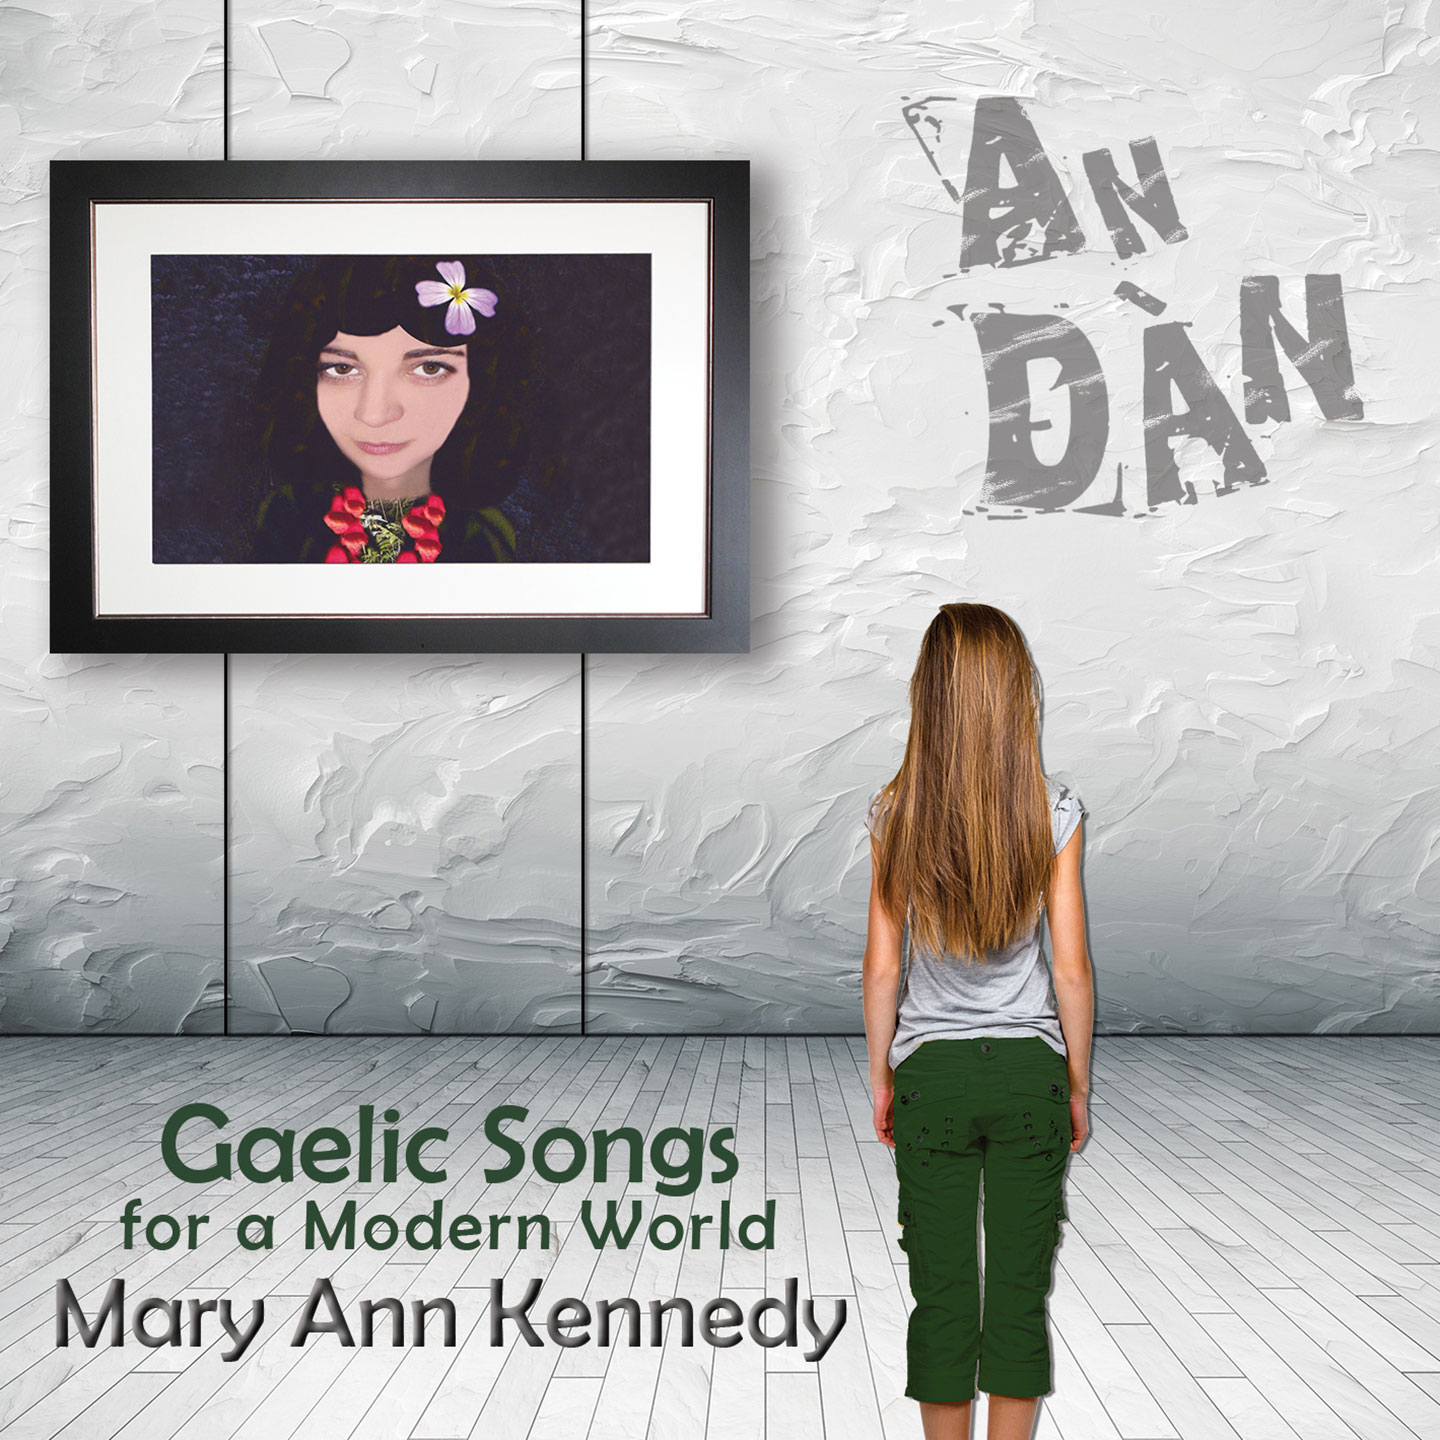 EUCD2737 An Dàn - Gaelic Songs for a Modern World